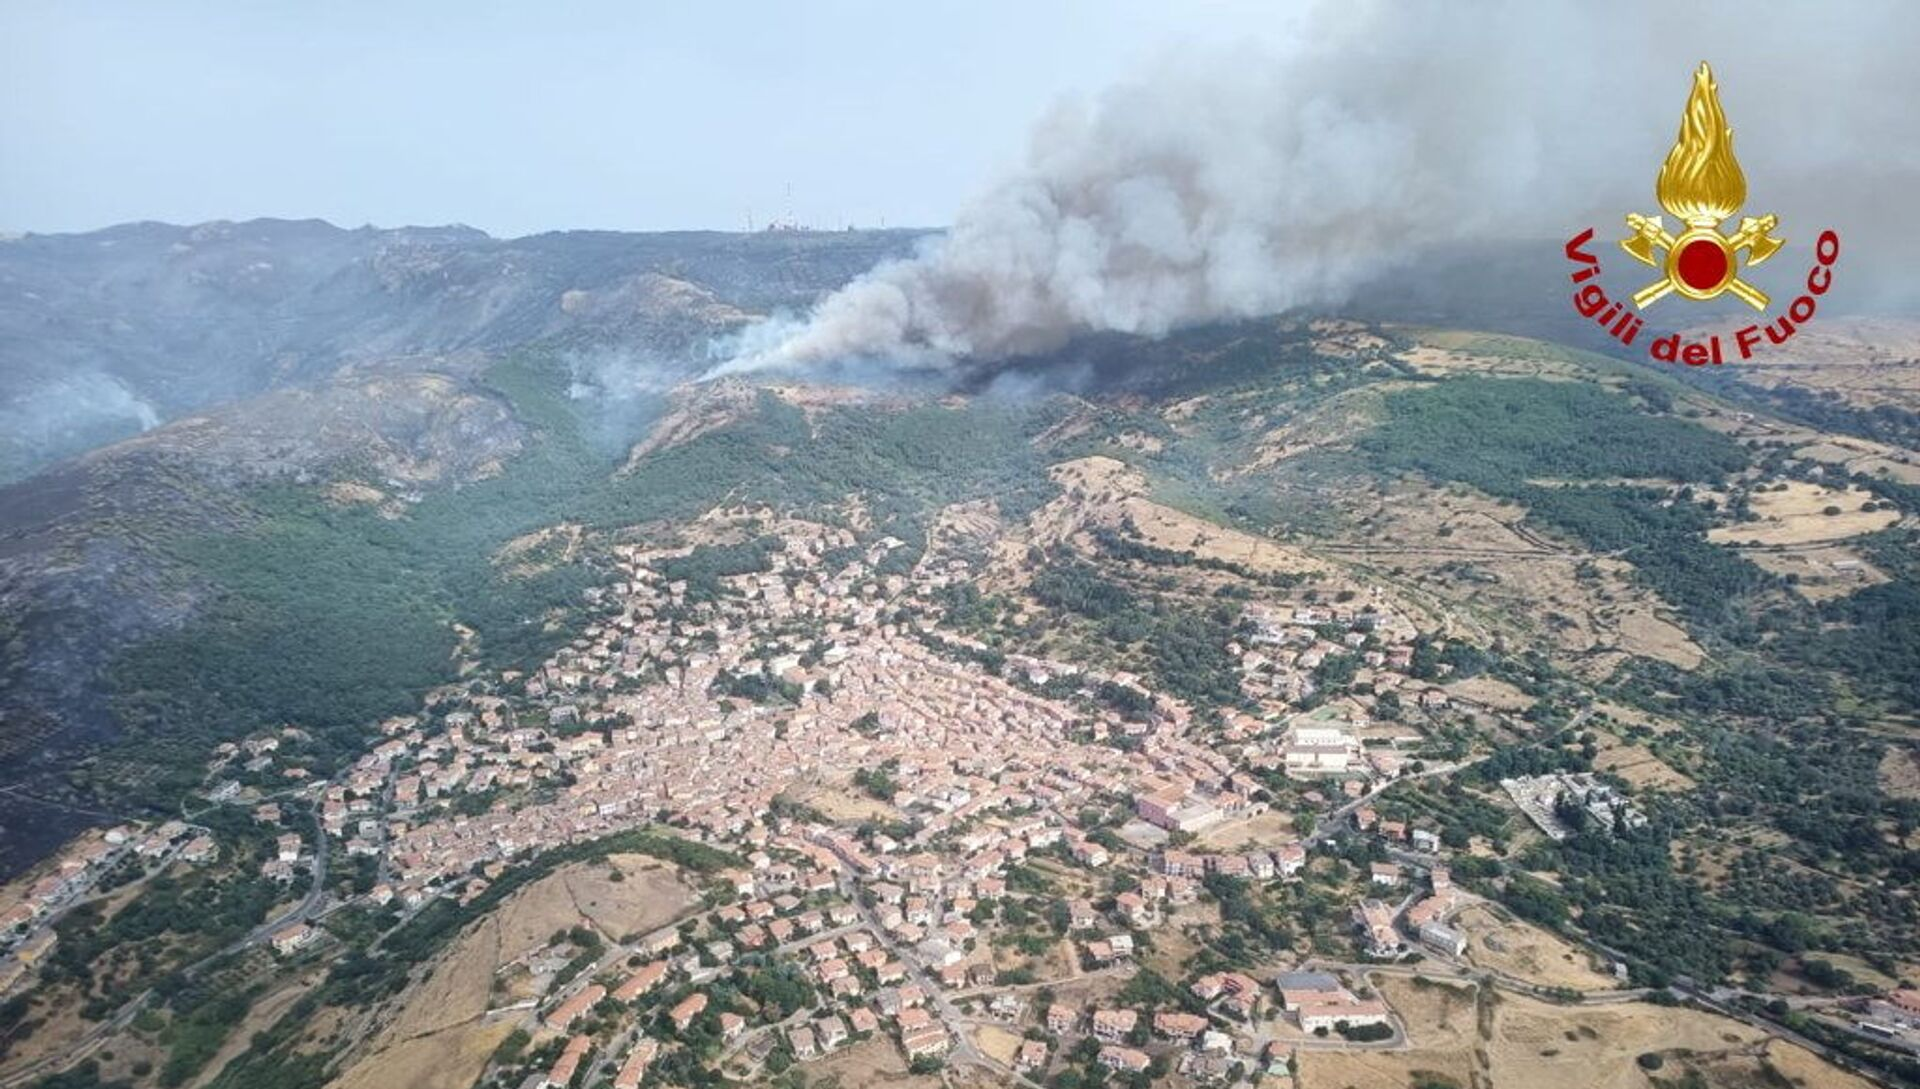 An aerial view from a helicopter shows a large wildfire that broke out near Santu Lussurgiu, Sardinia, Italy July 25, 2021. - Sputnik International, 1920, 25.07.2021